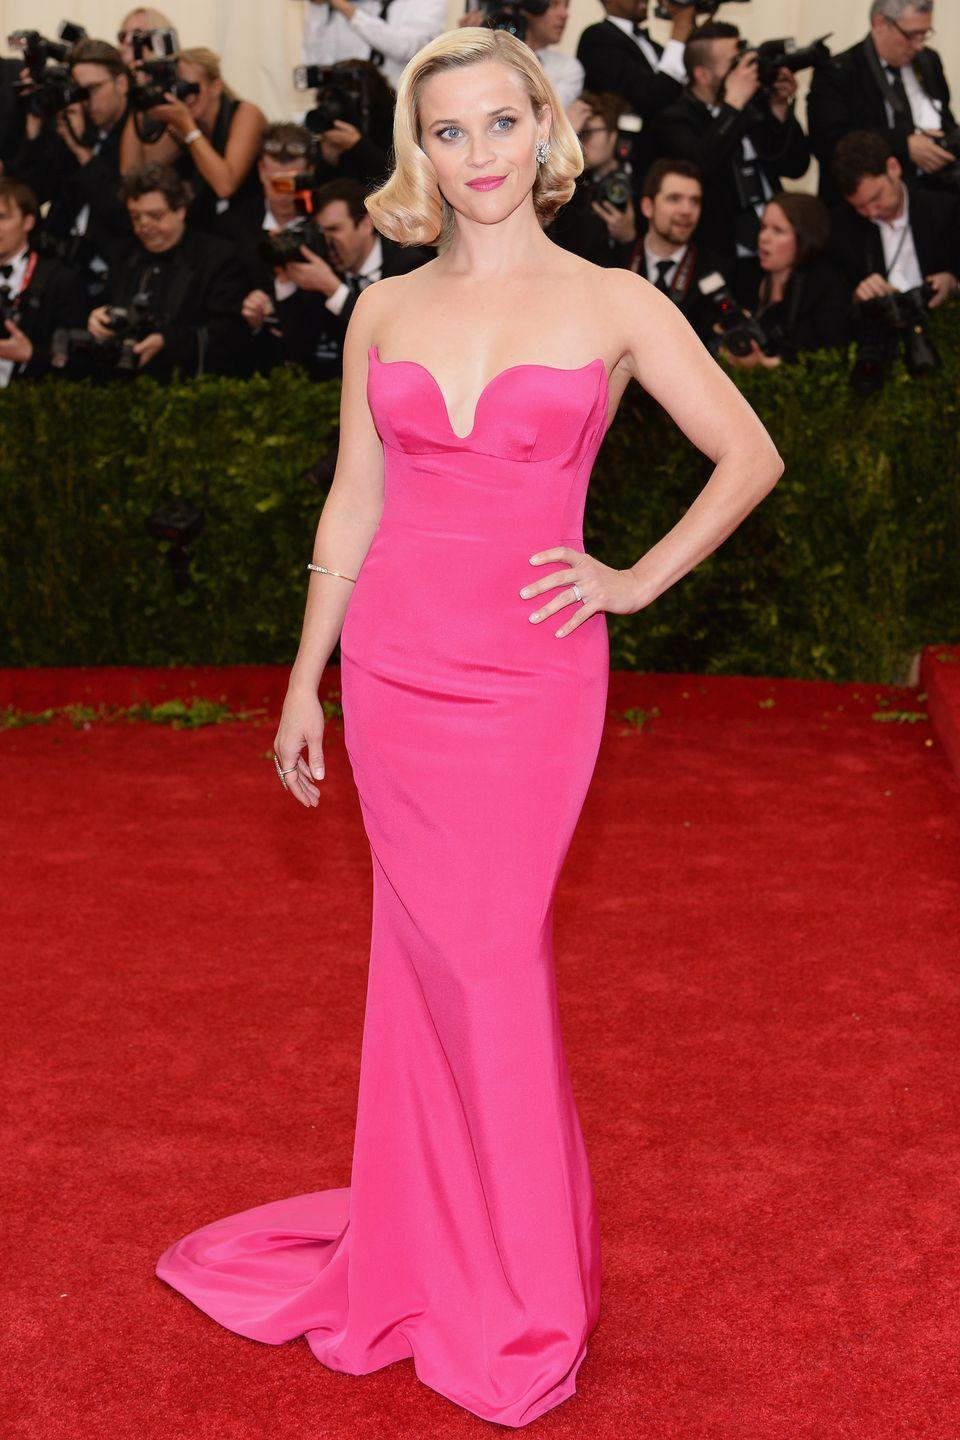 <p>At the 2014 Met Gala, Reese Witherspoon wore a strapless dress in the same shade as Princess Aurora's pink gown.</p>